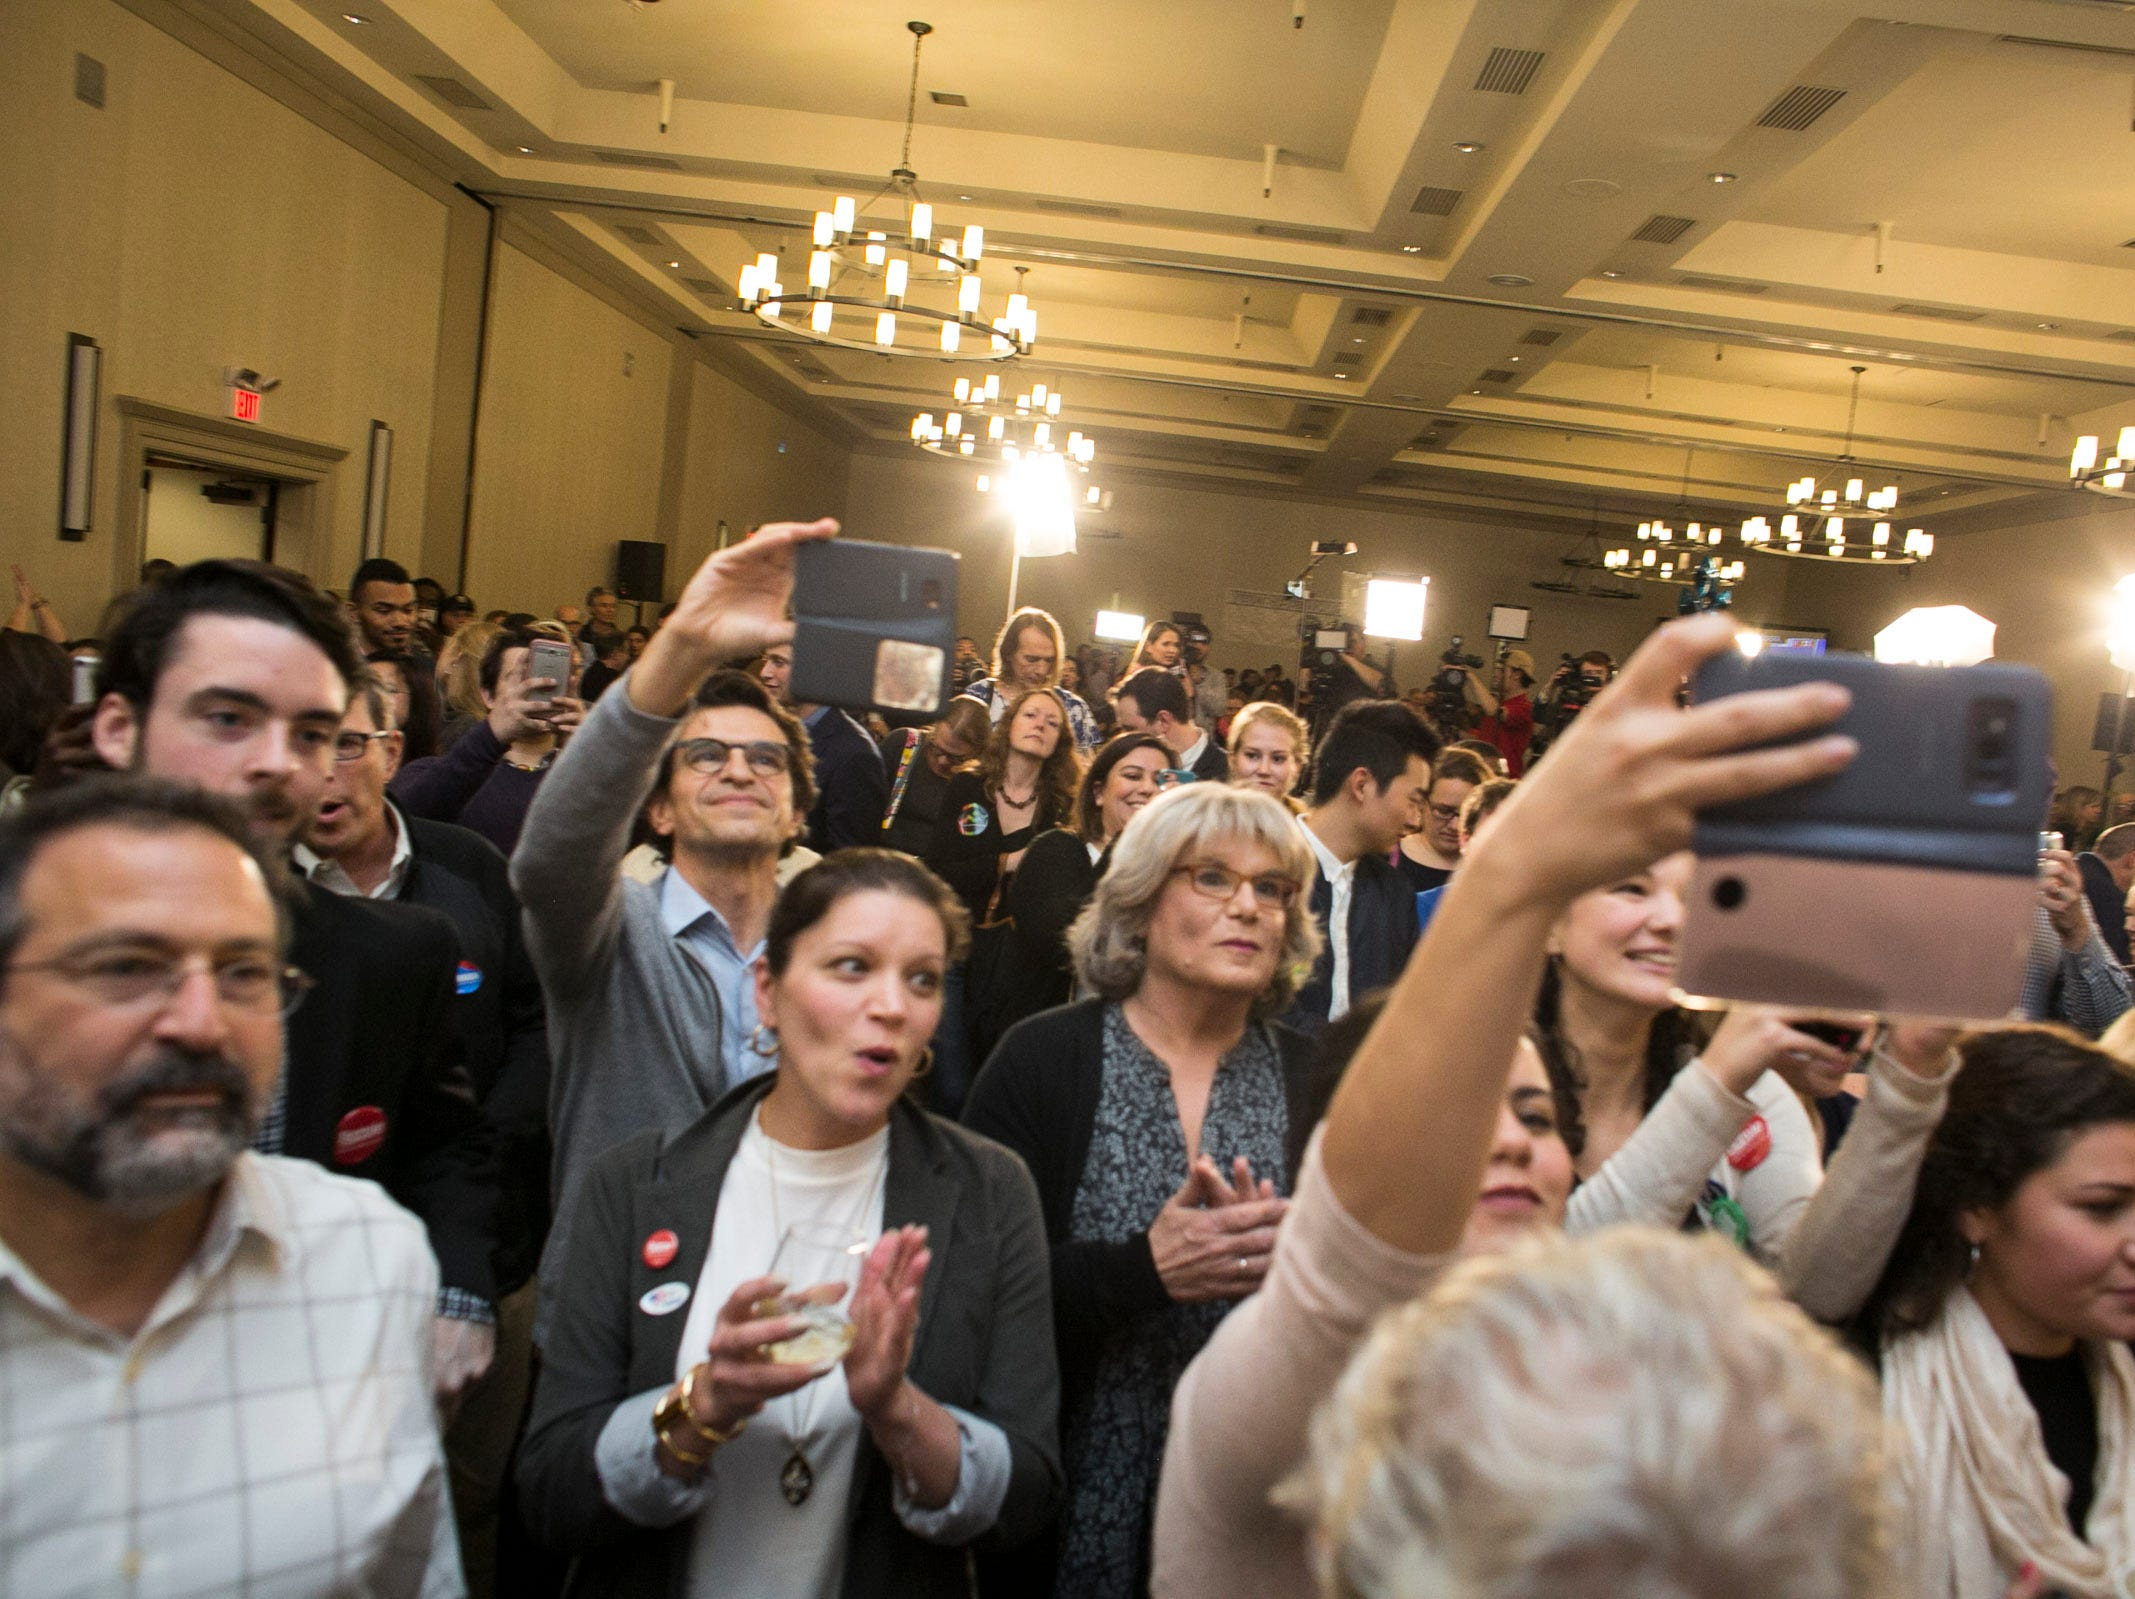 Onlookers cheer for Sen. Bernie Sanders at the Hilton in Burlington, Vermont on Tuesday, November 6, 2018.